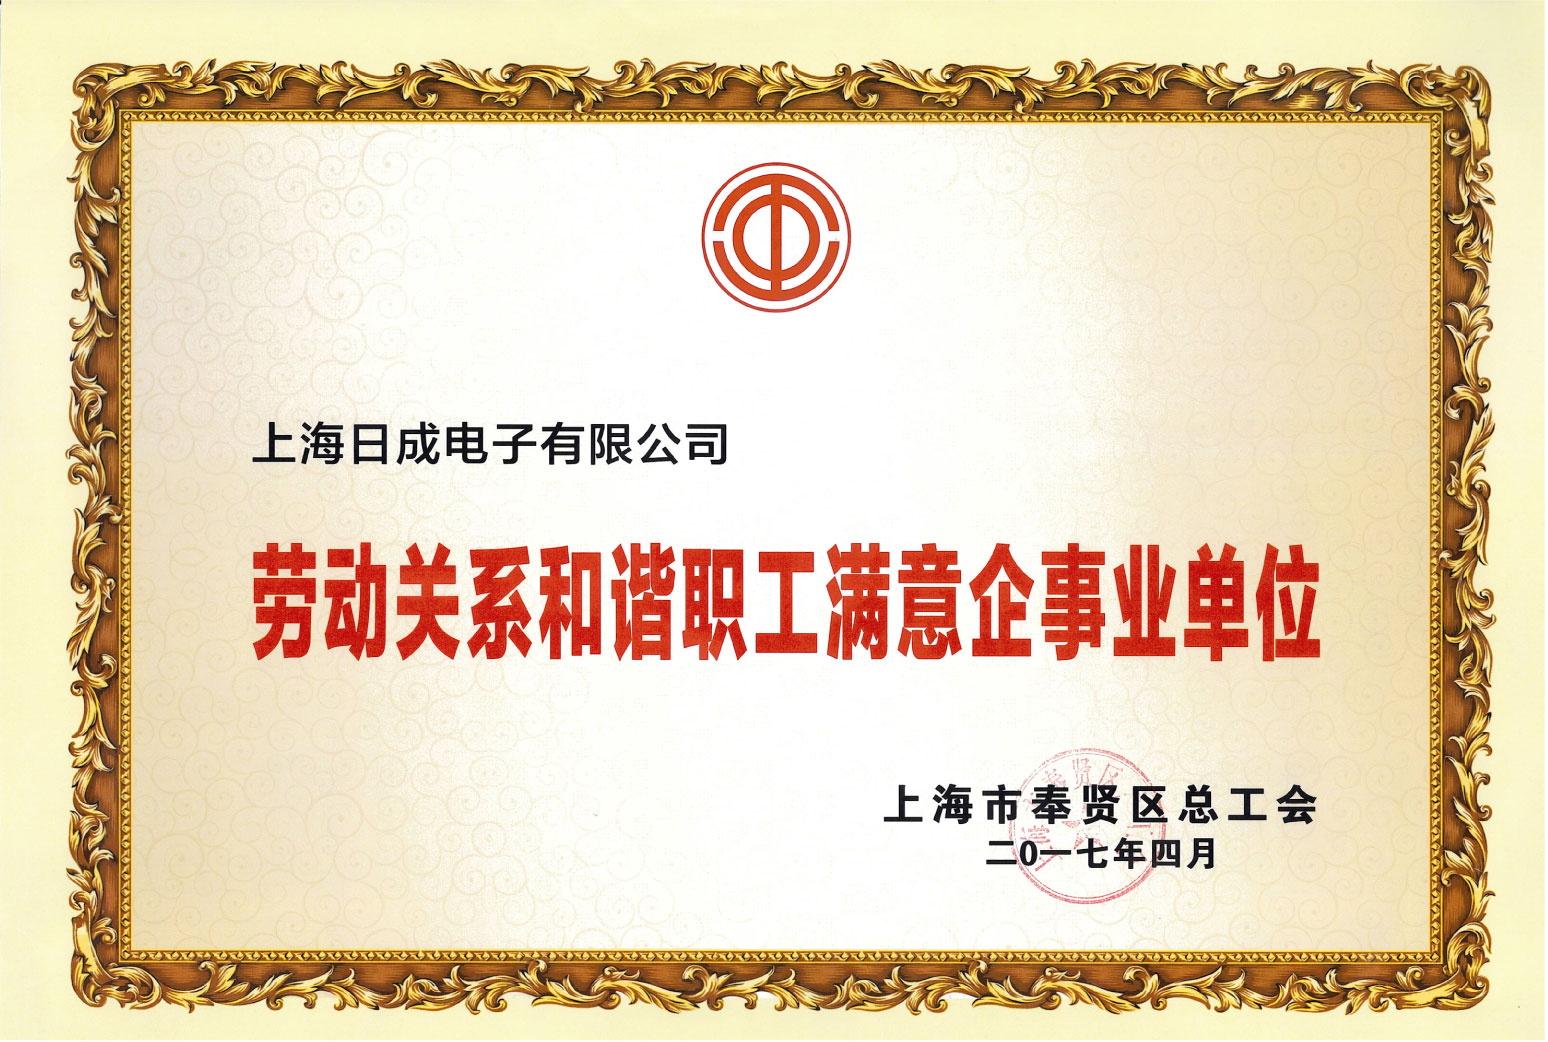 Labor relations harmonious workers satisfied with the enterprises and institutions Award